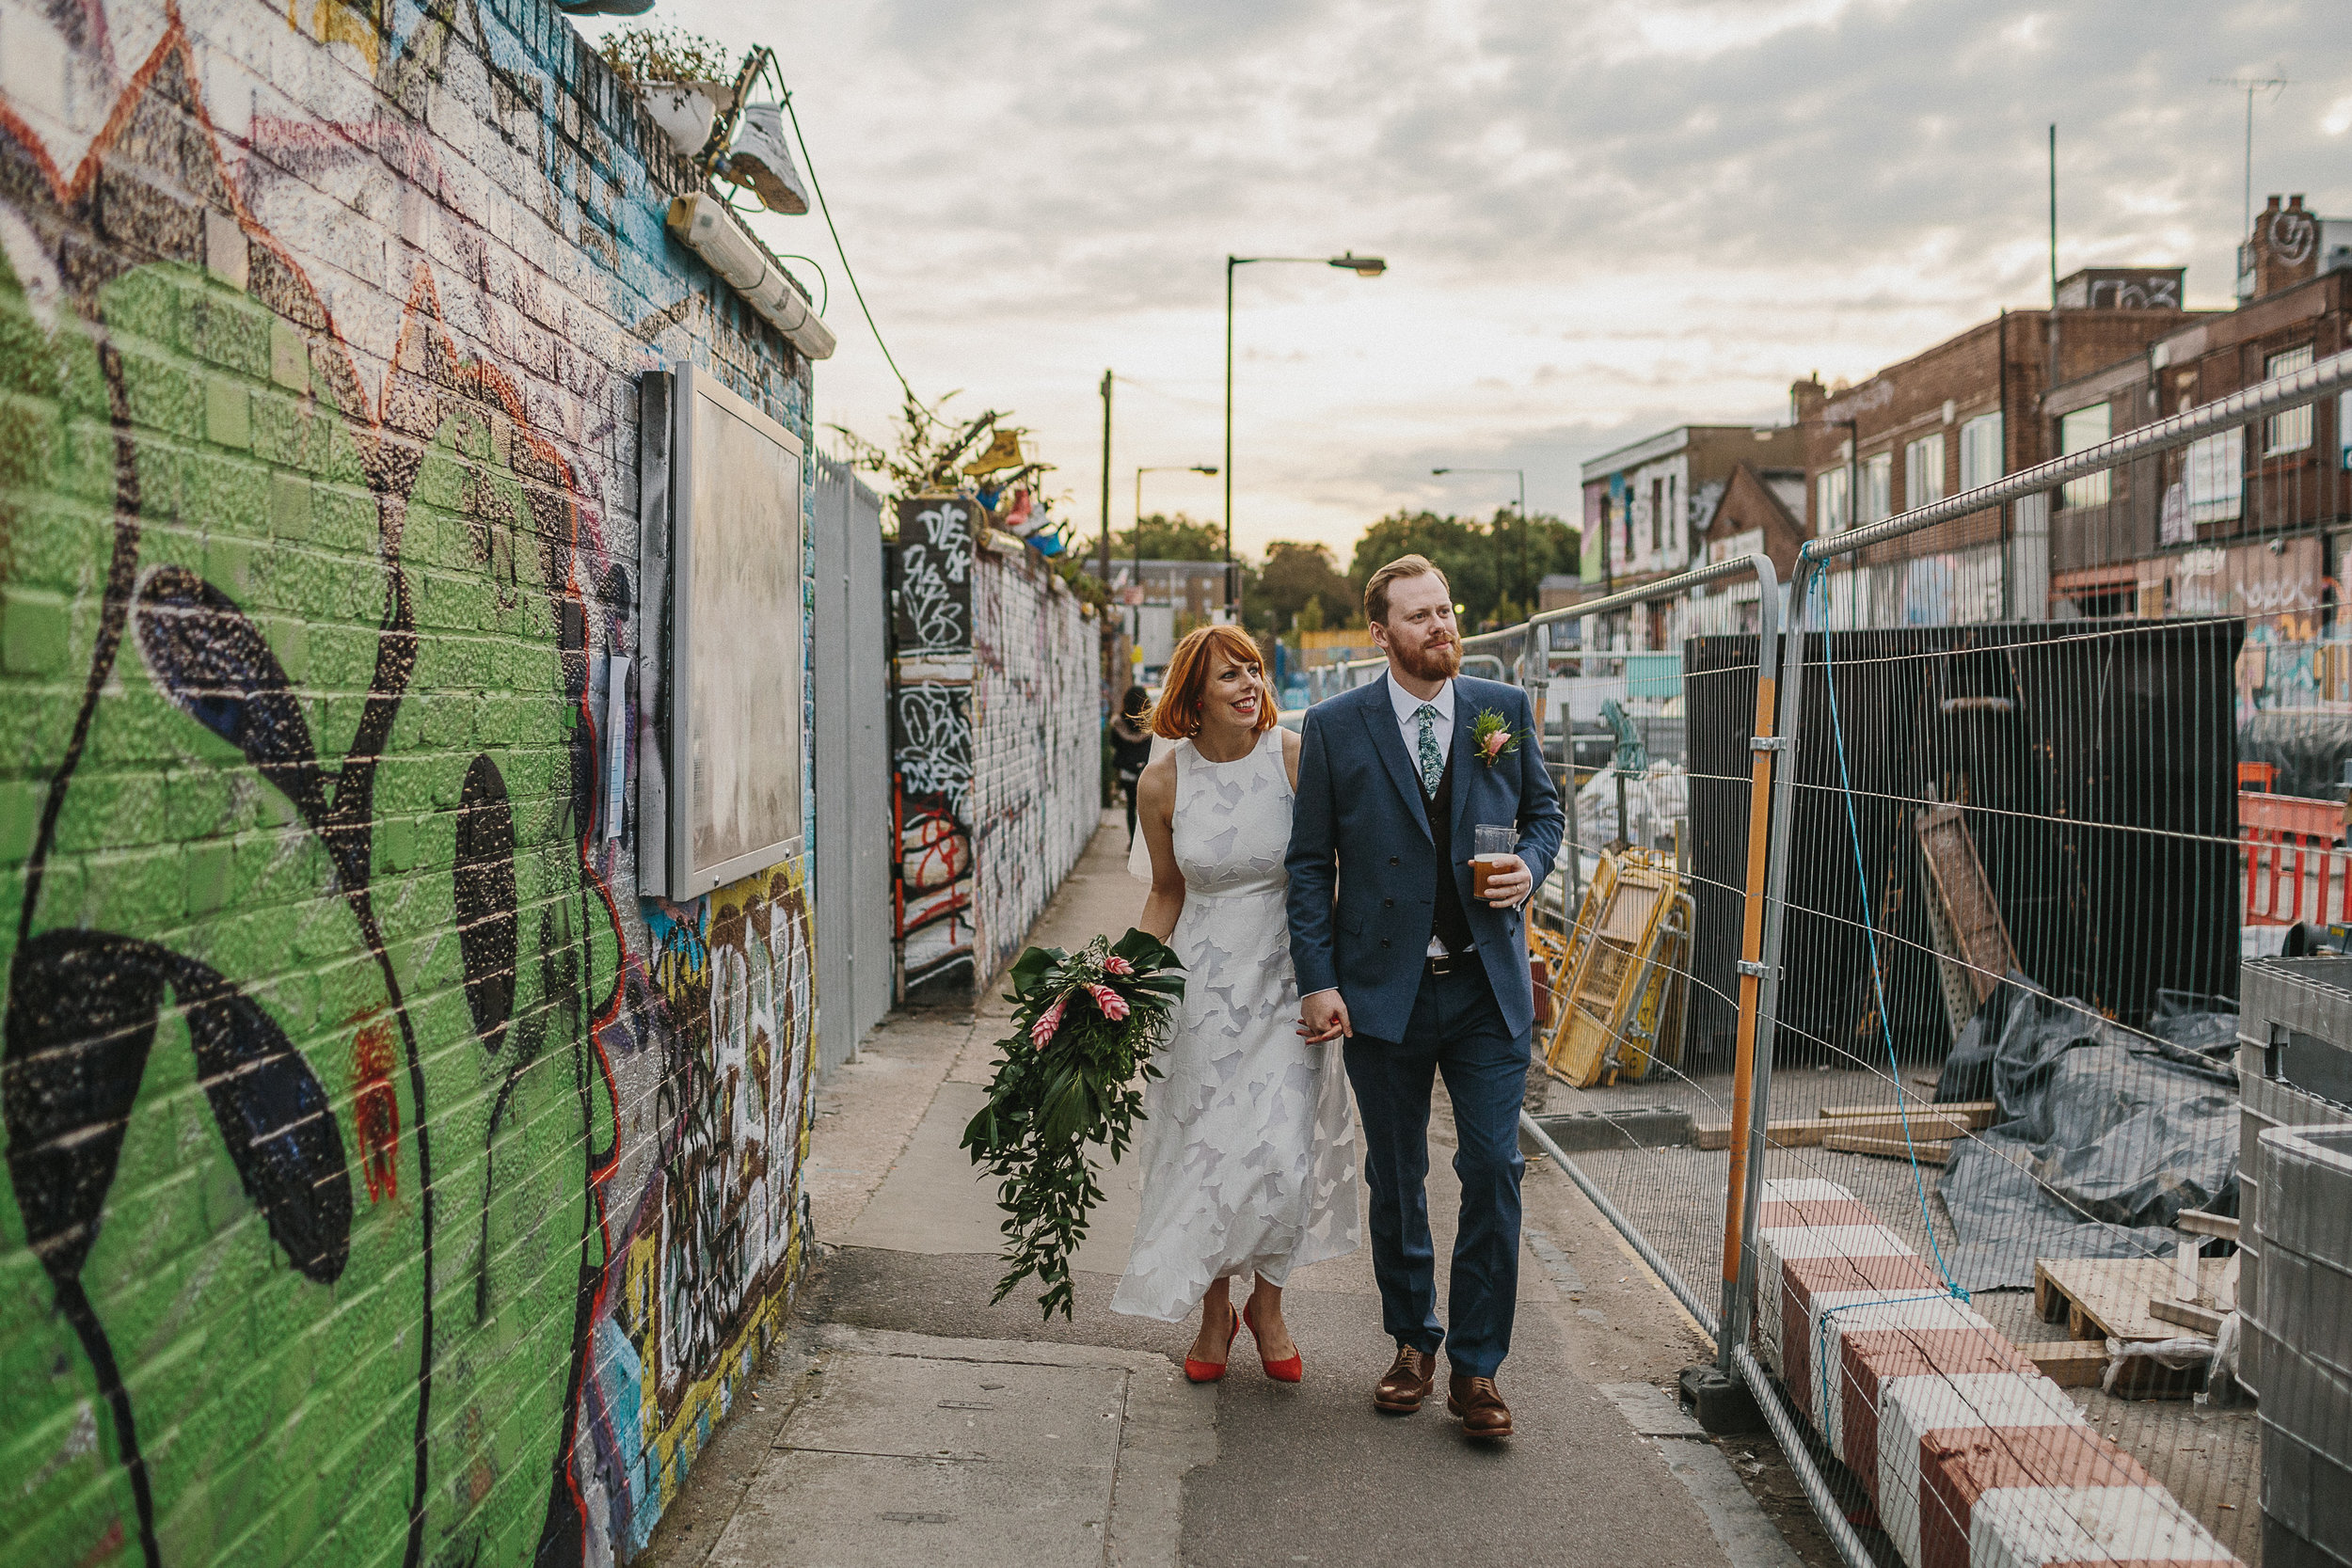 London_Brewery_Wedding_30.JPG